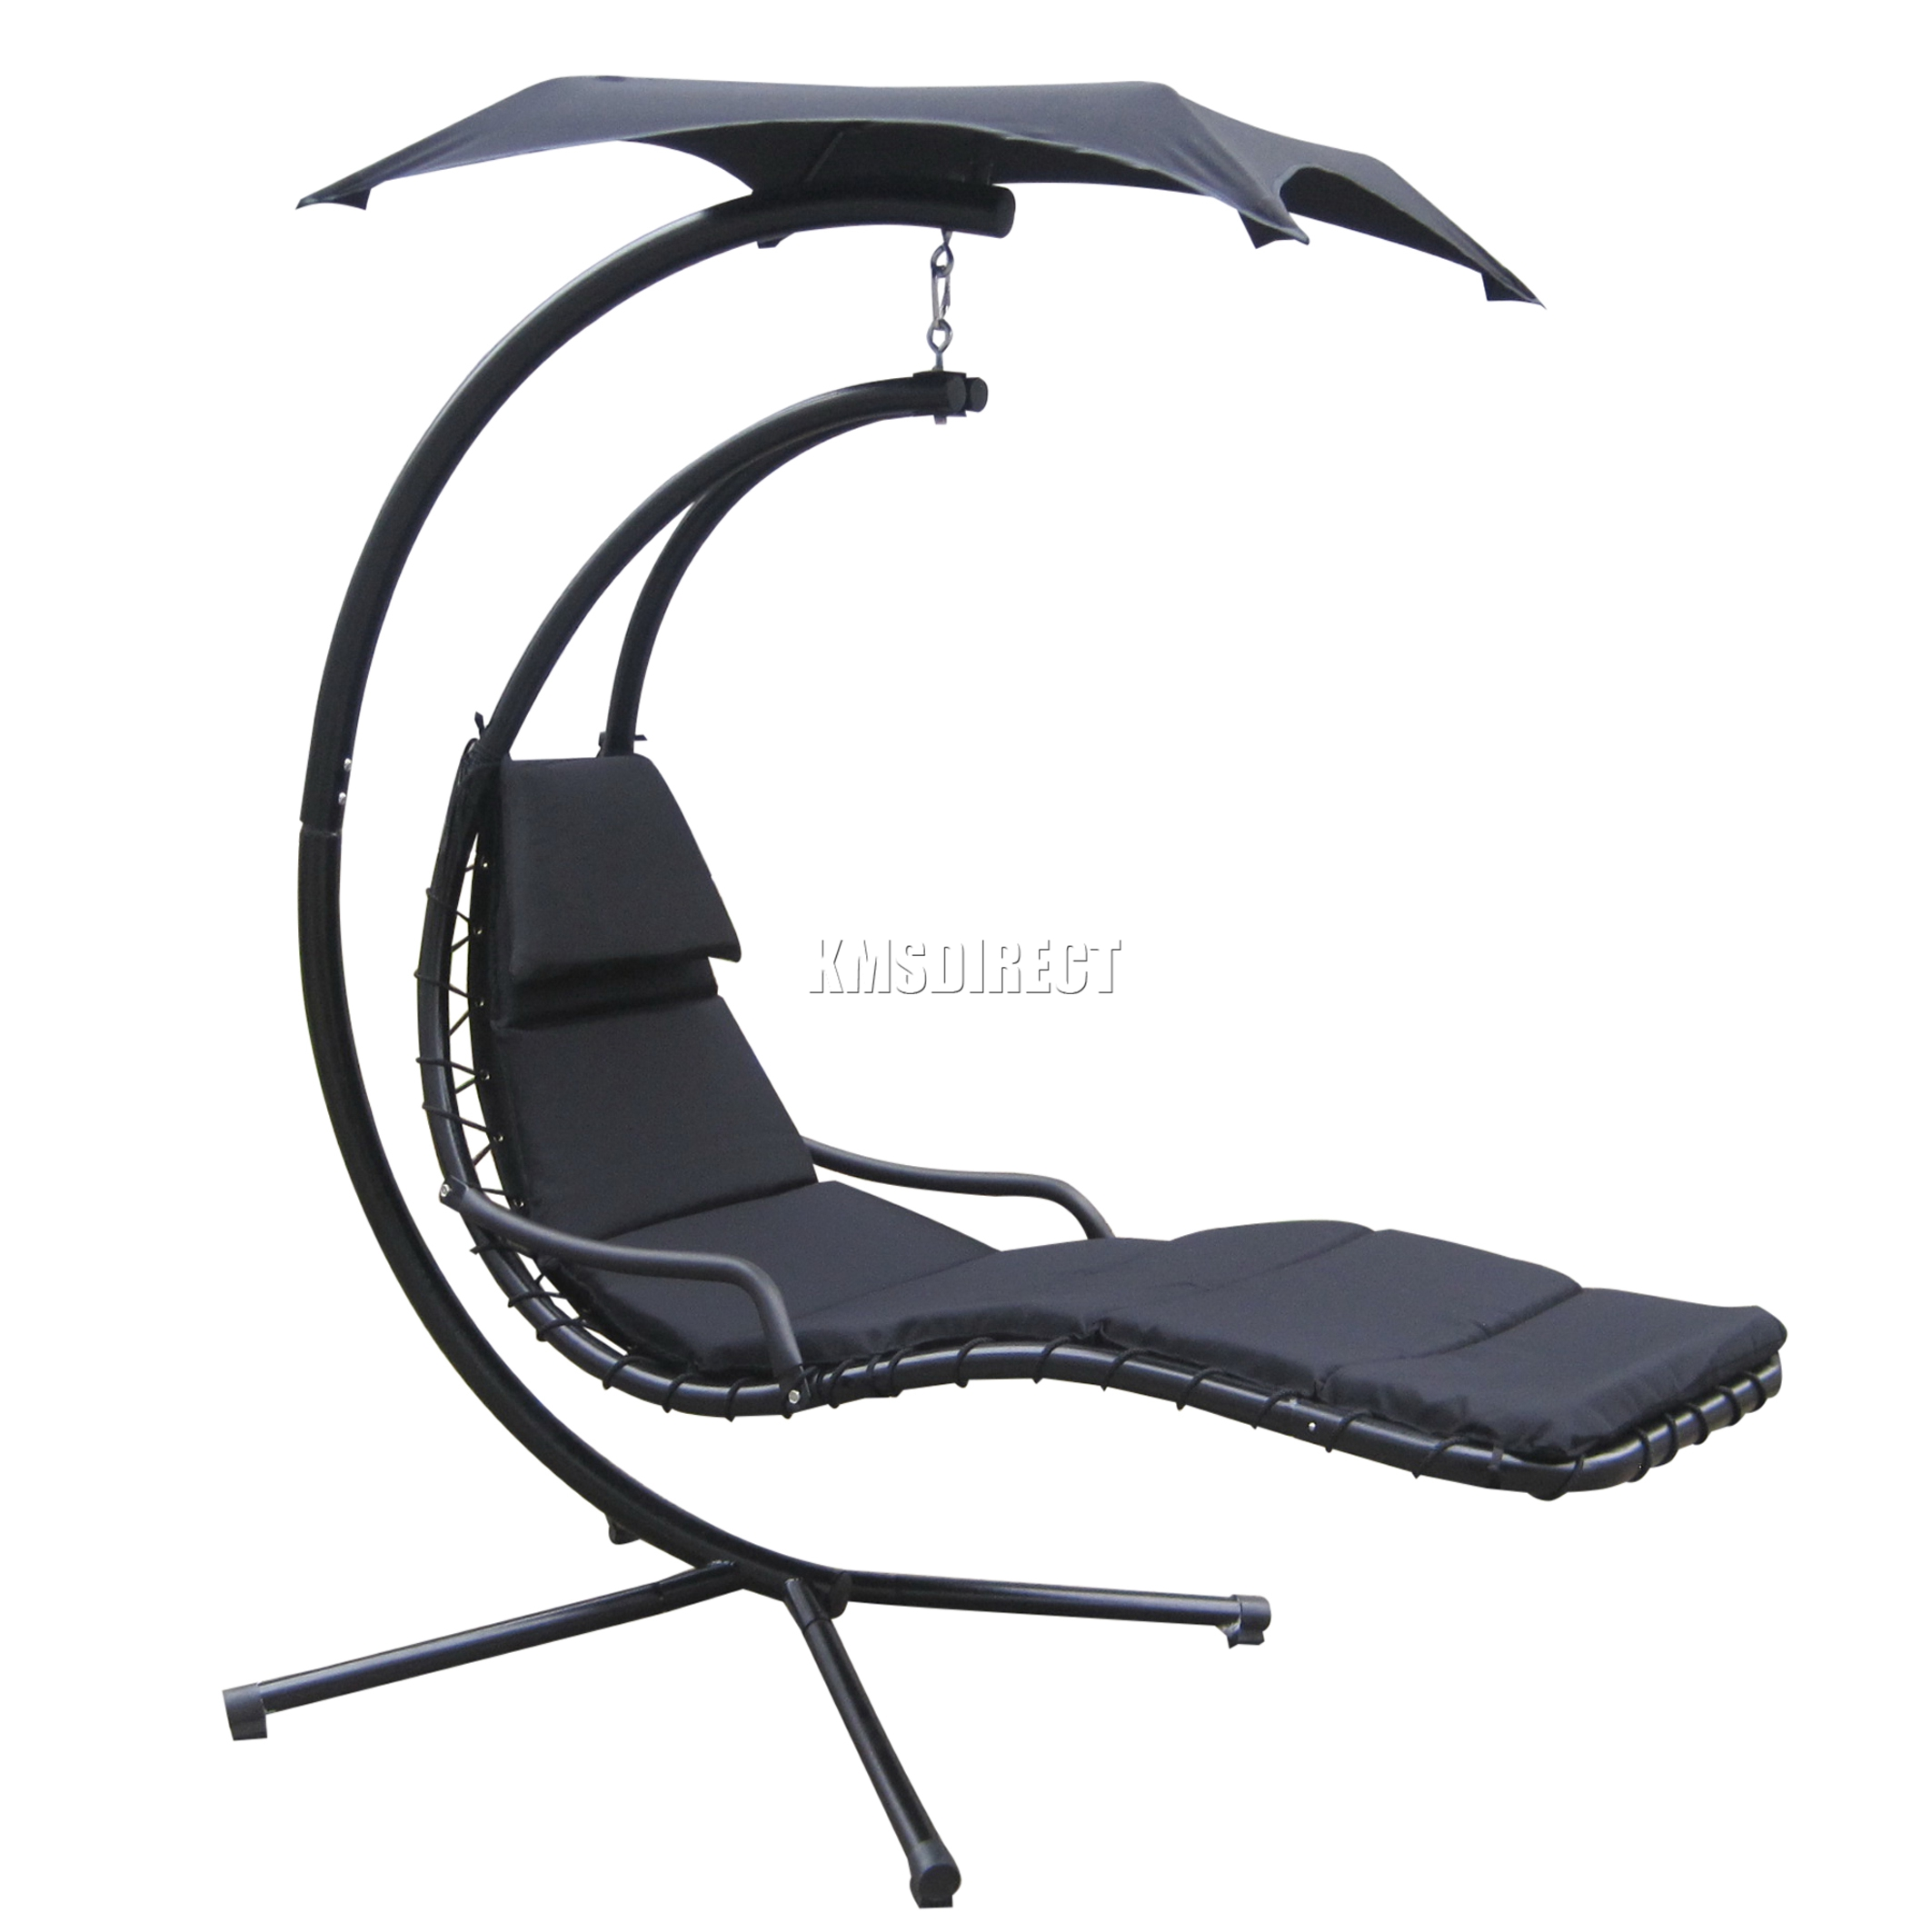 sentinel foxhunter garden black helicopter hanging dream chair swing hammock sun lounger foxhunter garden black helicopter hanging dream chair swing      rh   ebay co uk